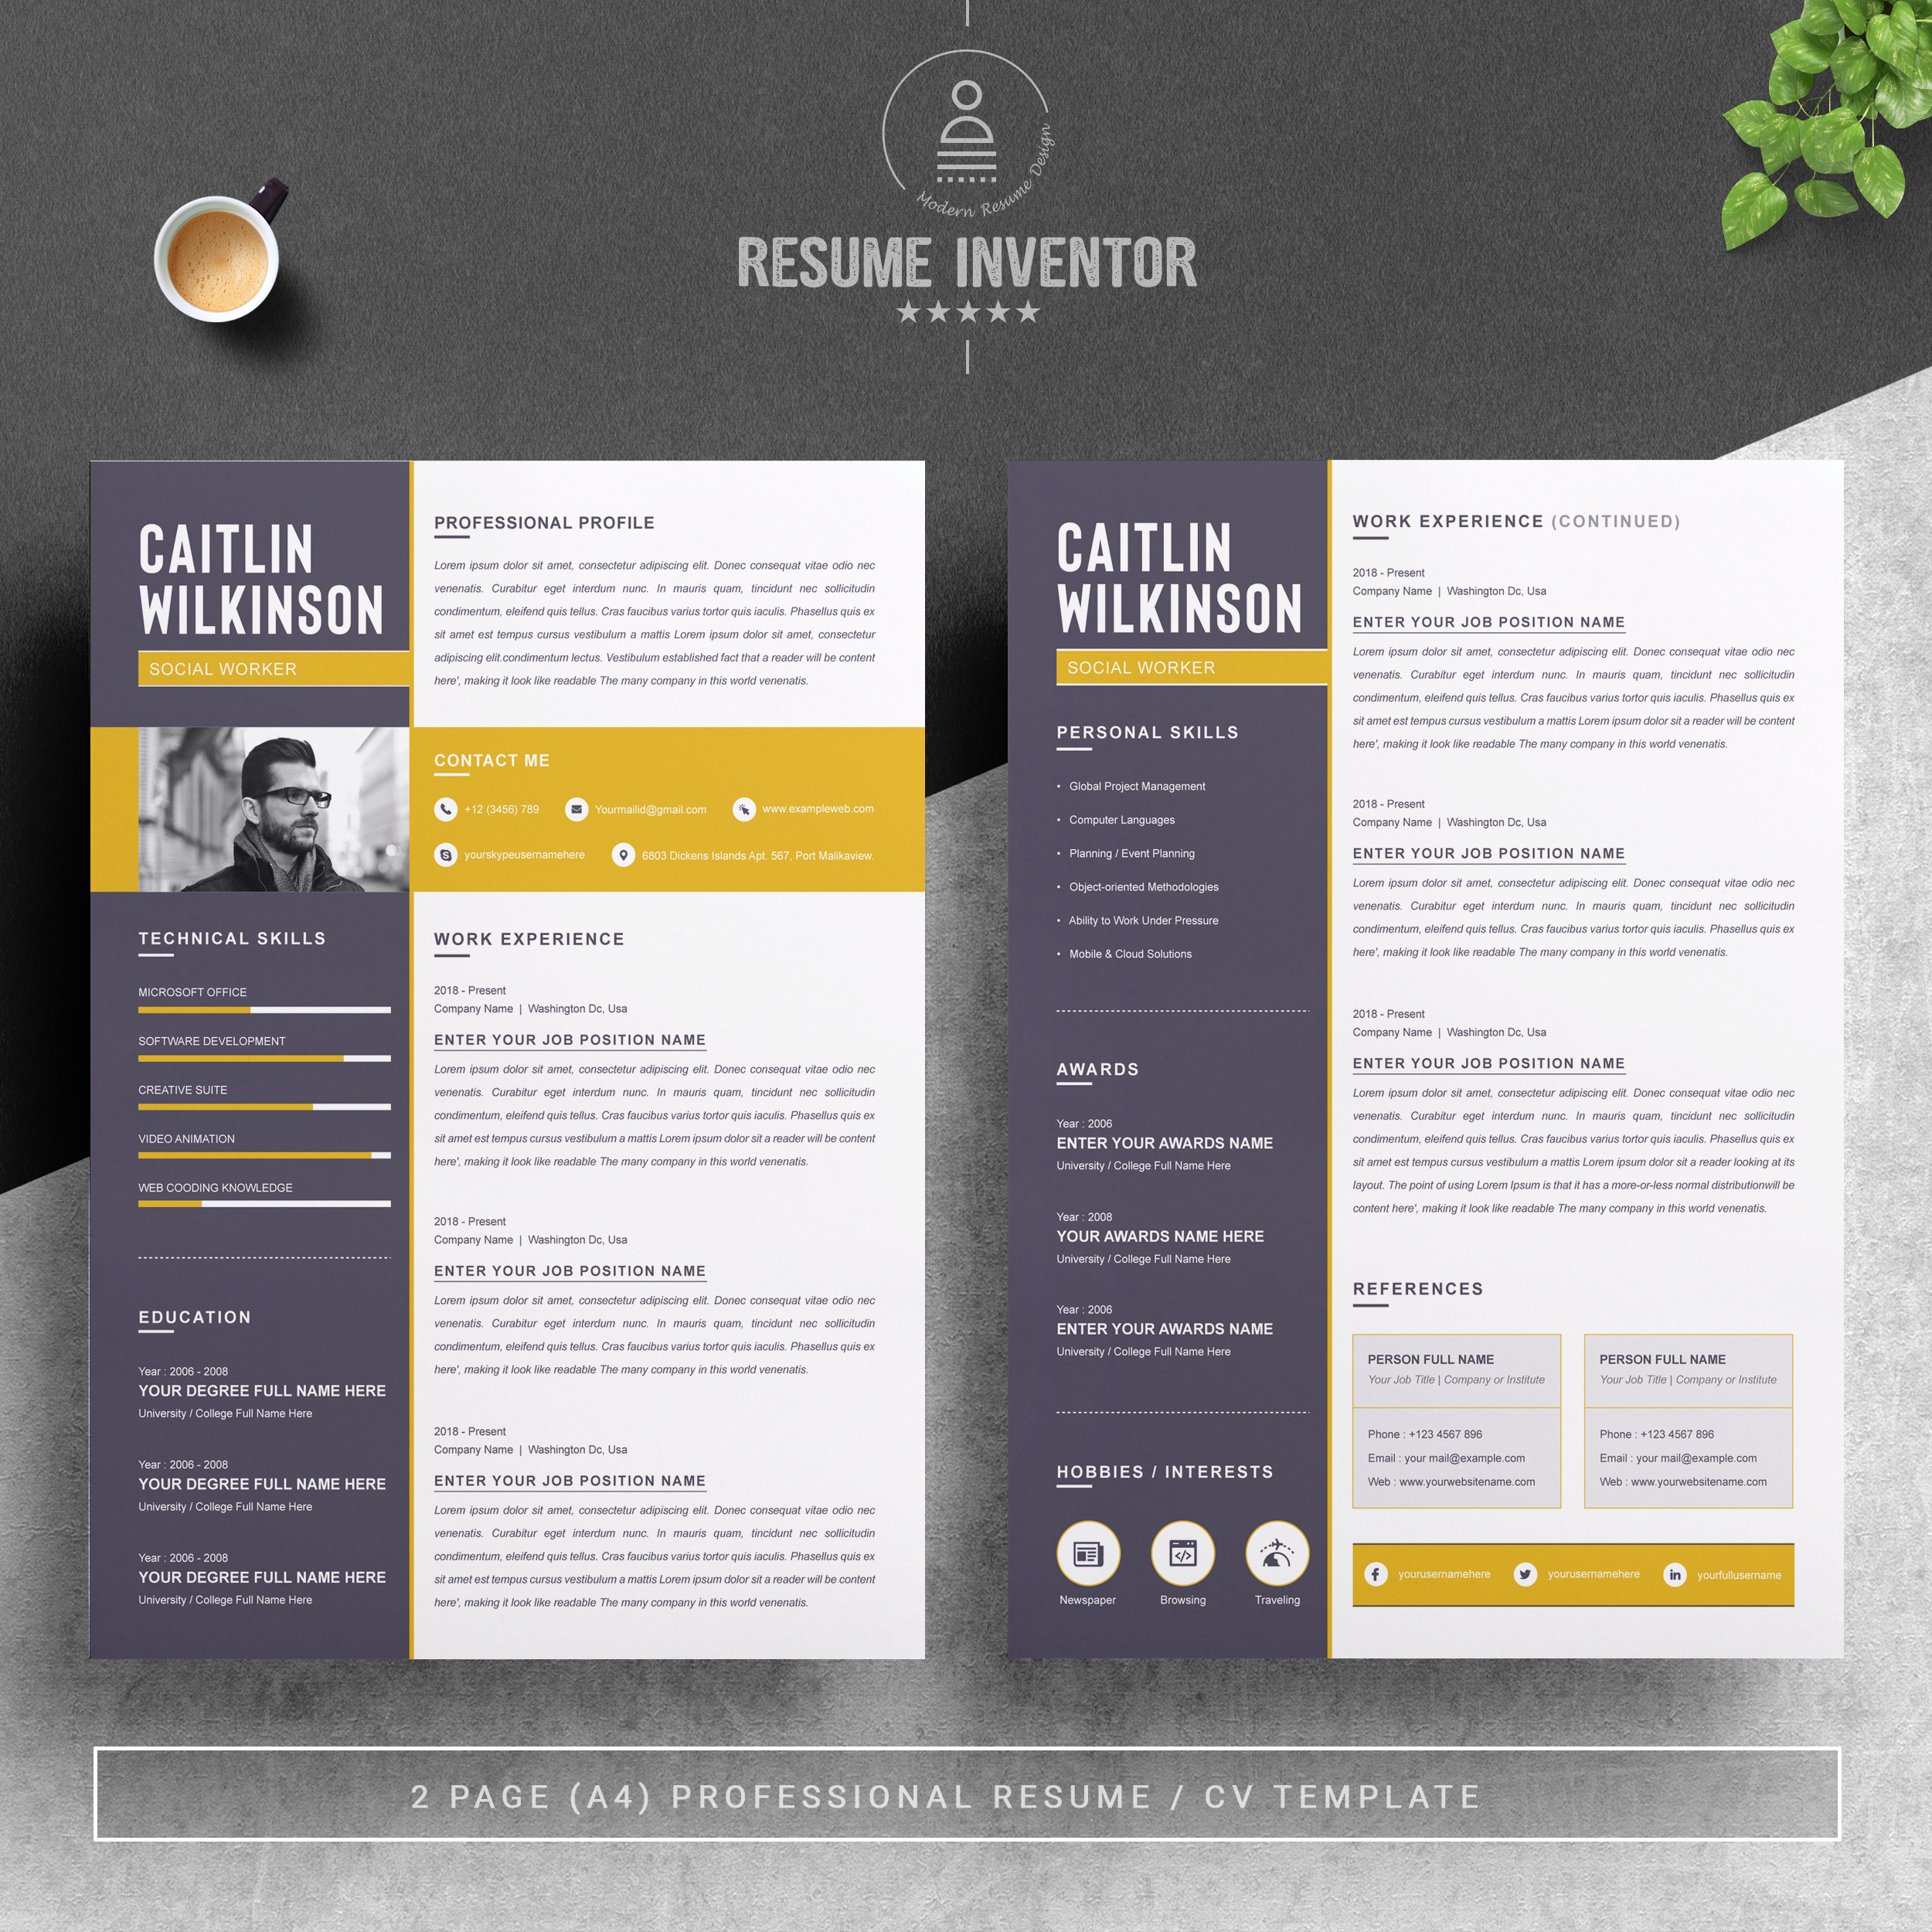 free resume templates with multiple file formats resumeinventor two template design if Resume Two Page Resume Template